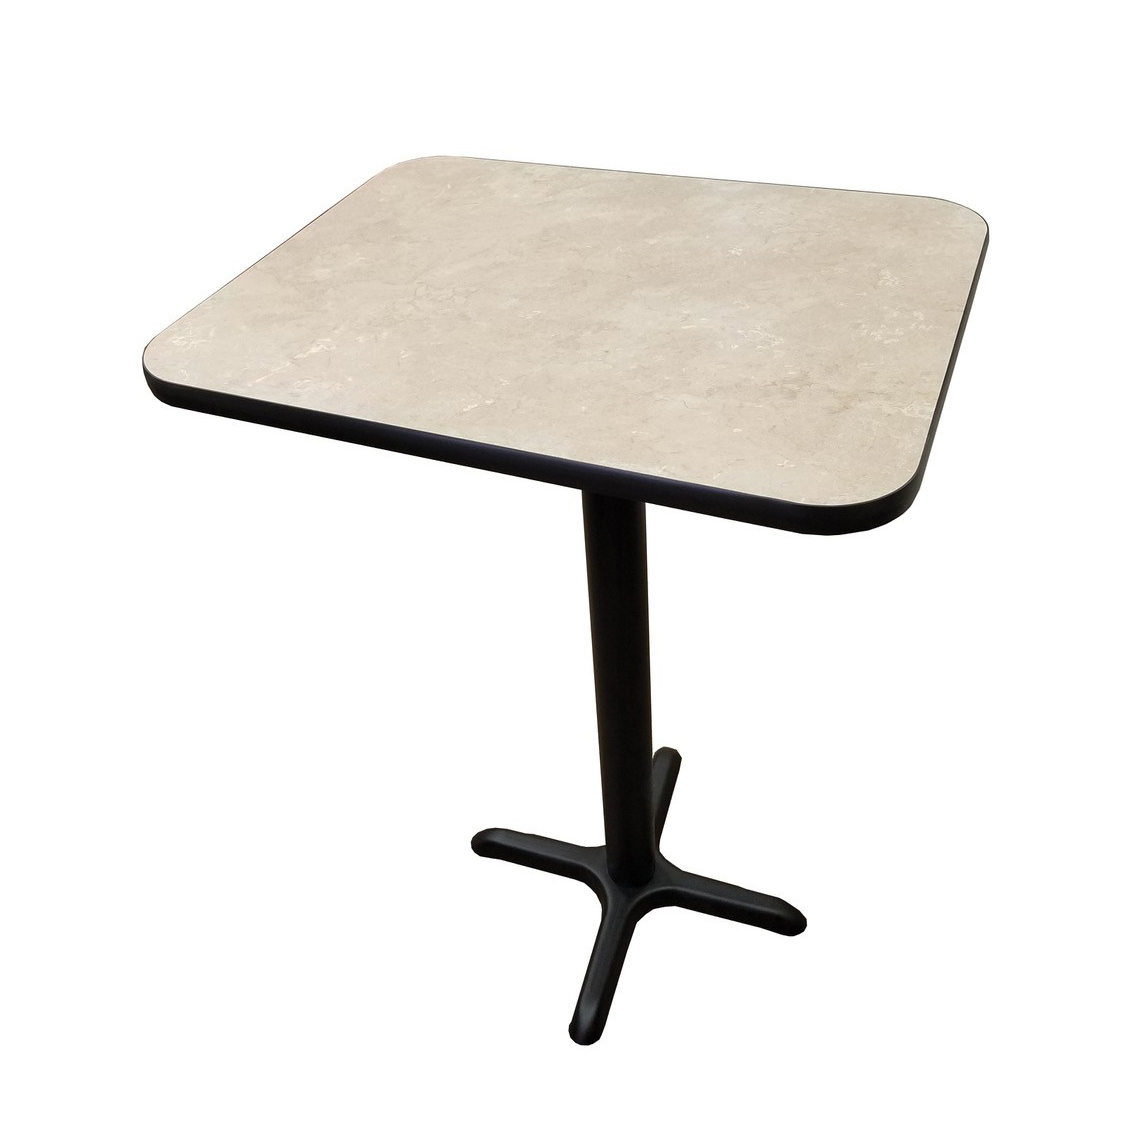 "superior-equipment-supply - Oak Street Mfg - Oak Street Economy Beach Bum Table Top Square 36"" X 36"" Laminate Surface"